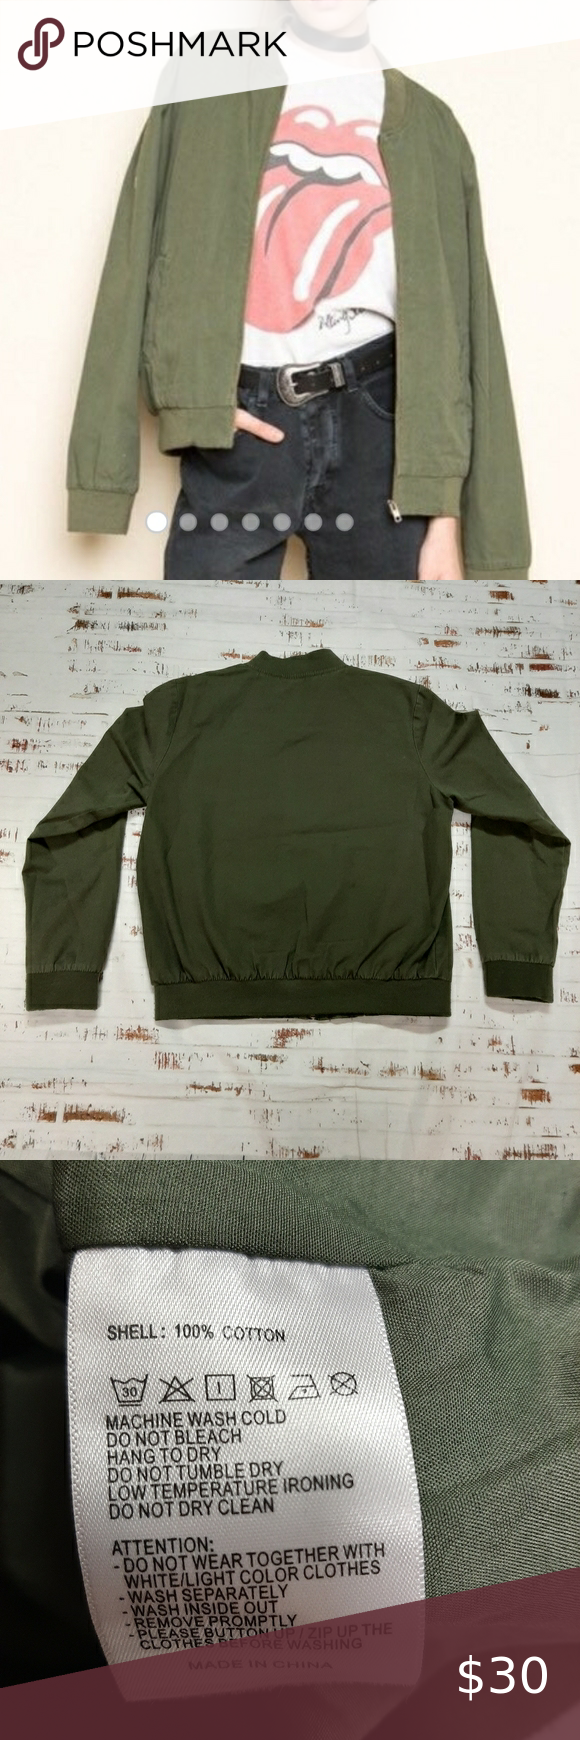 Brandy Melville Canvas Bomber Jacket Brandy Melville Canvas Bomber Jacket Olive Green One Size Excellent Used Con Bomber Jacket Clothes Design Women Shopping [ 1740 x 580 Pixel ]